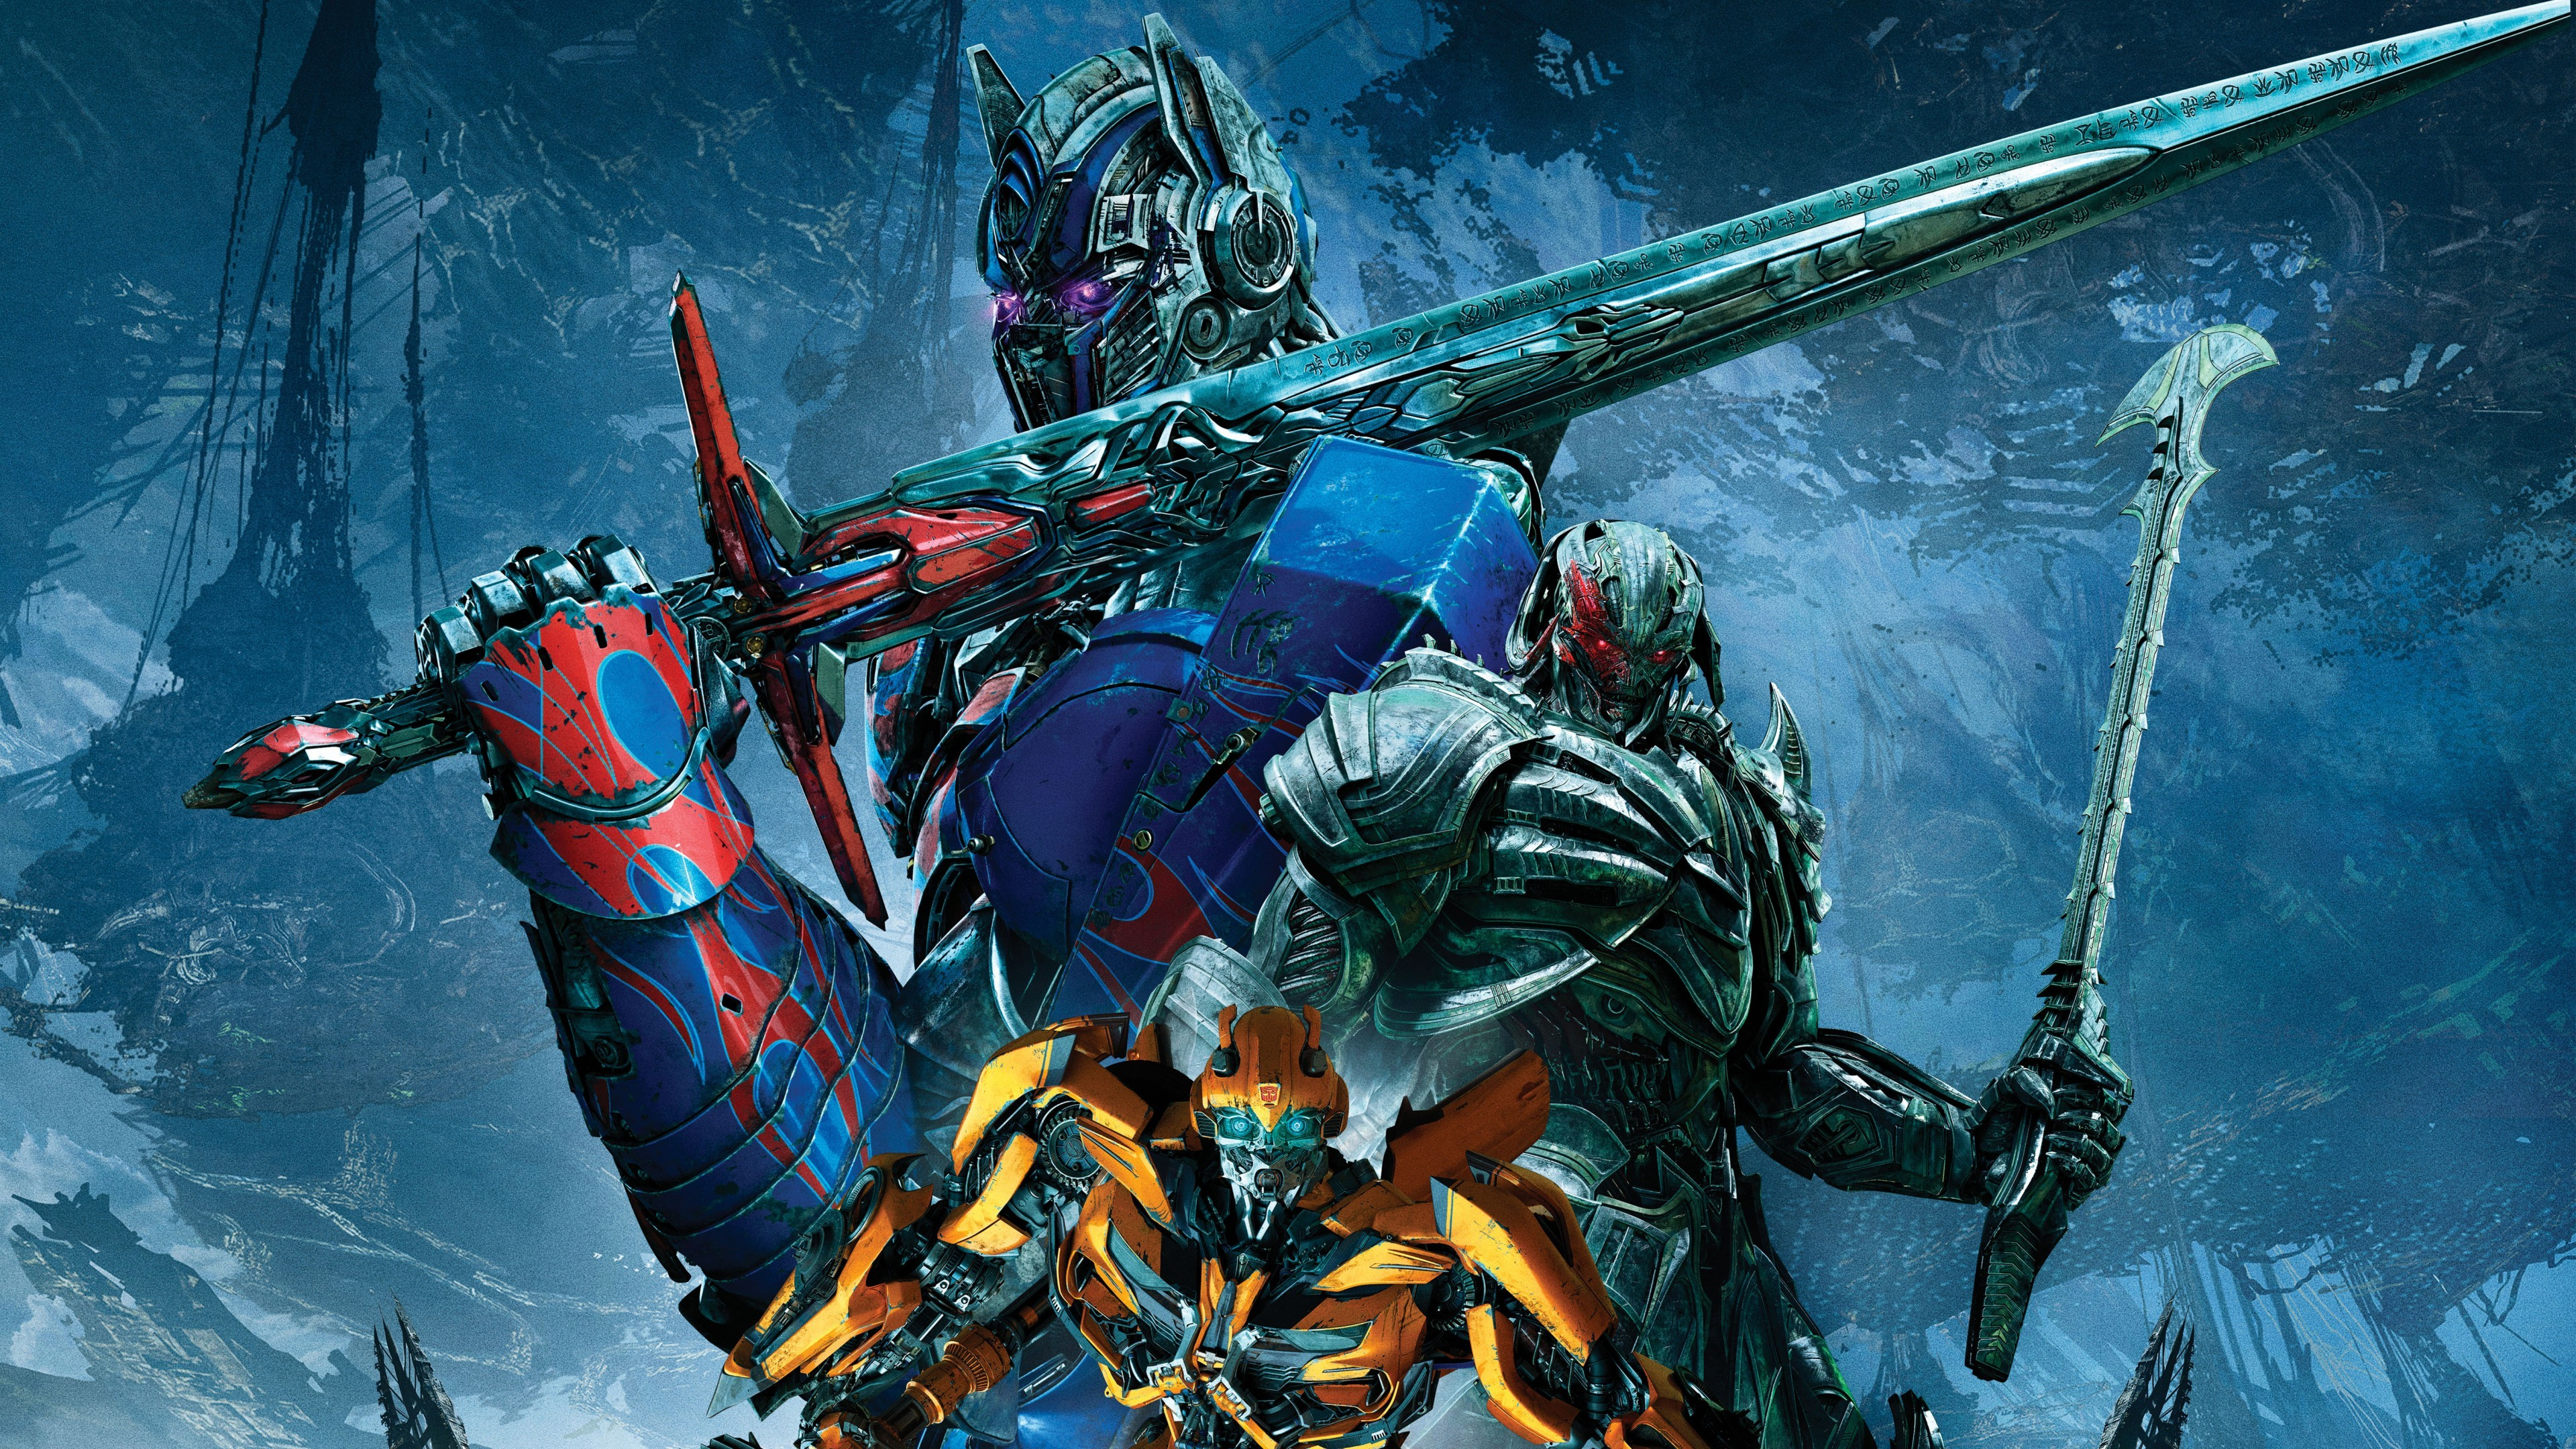 Imagenes De Transformers: Wallpaper Transformers: The Last Knight, Transformers 5